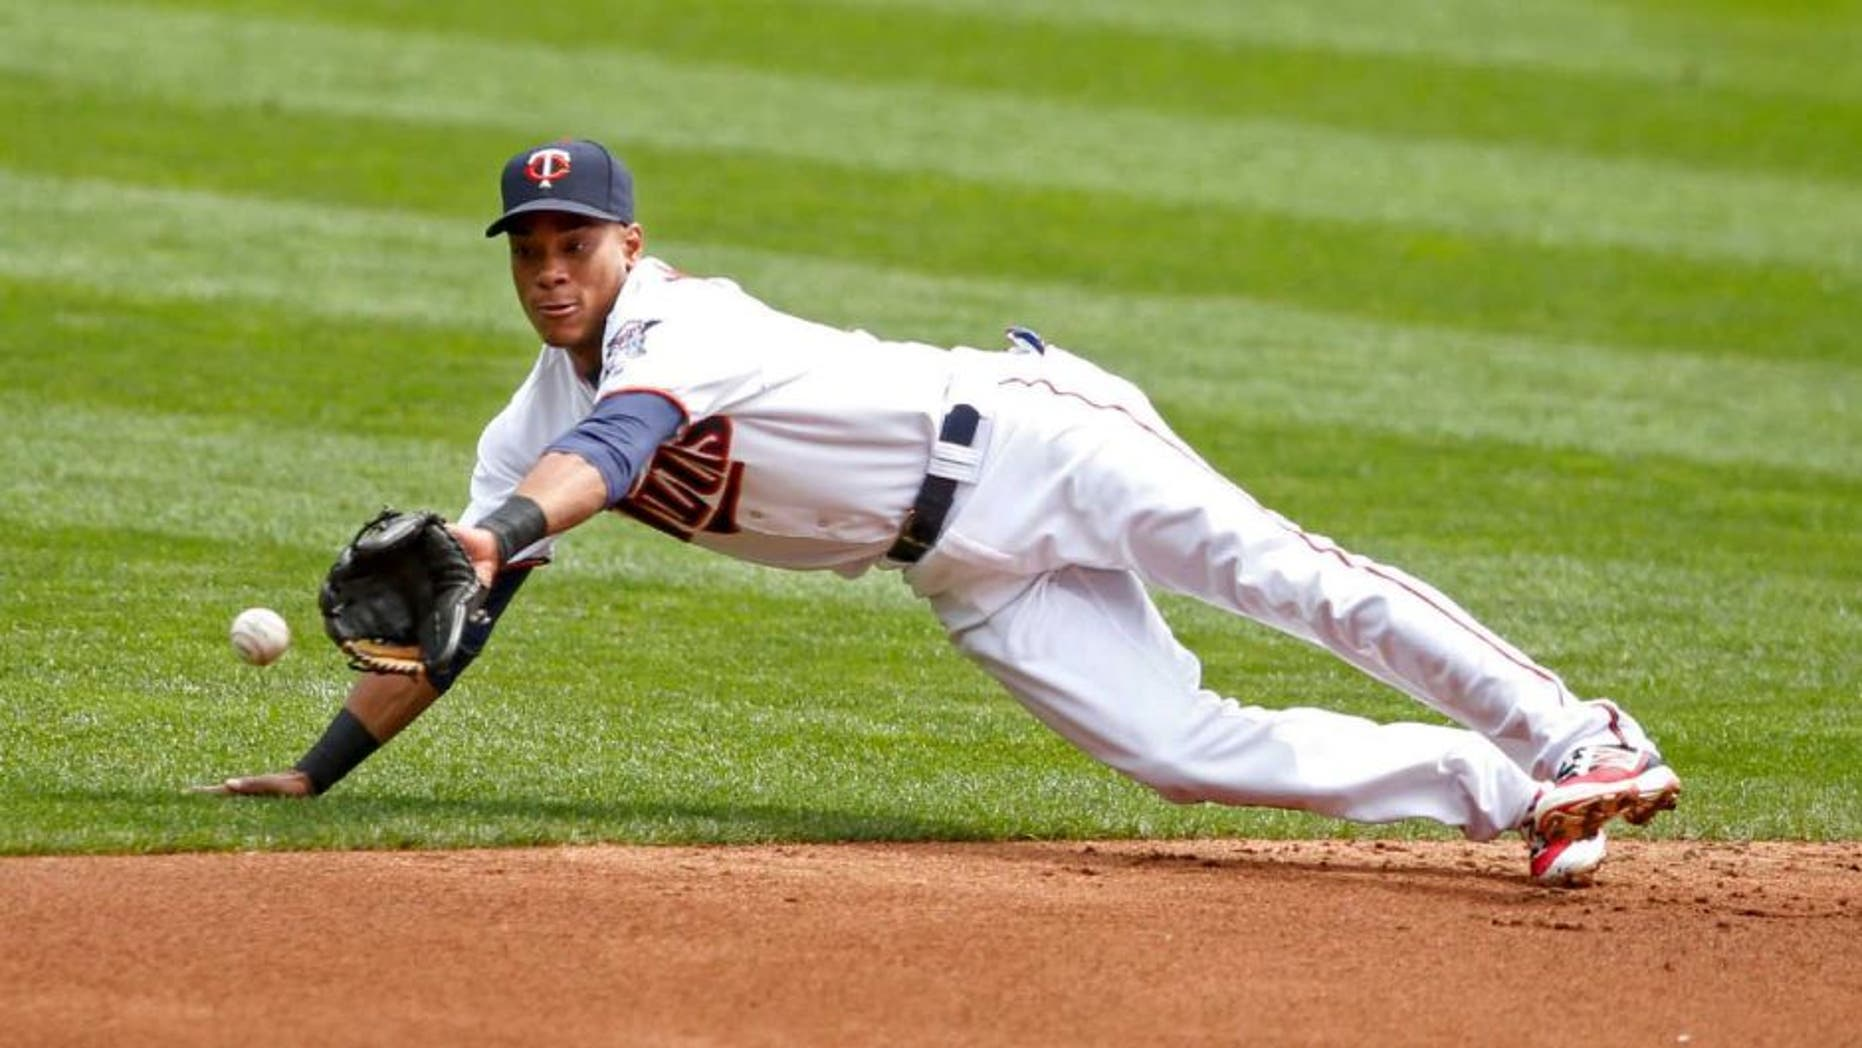 Thursday, Aug. 25, 2016: Minnesota Twins shortstop Jorge Polanco dives for a single by Detroit Tigers catcher James McCann (not pictured) in the second inning at Target Field. The Twins lost 8-5.